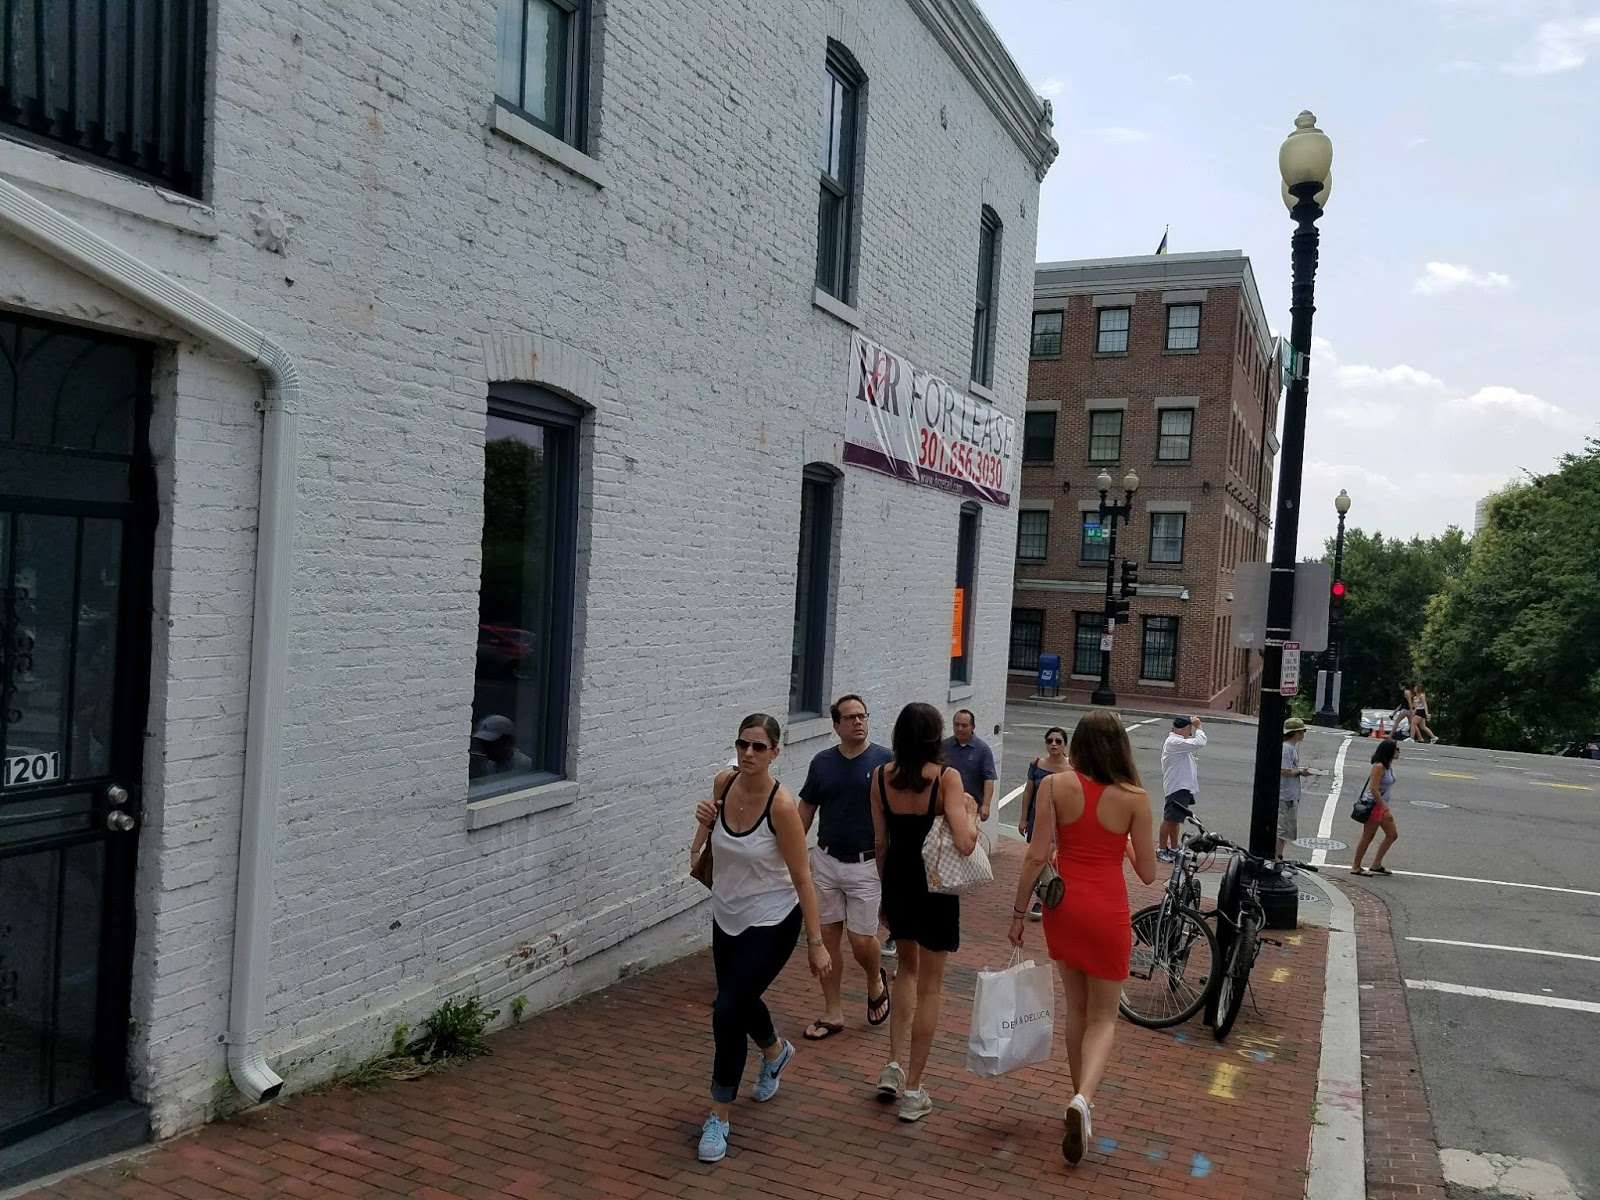 The Cellar Door - July 2017 34th \u0026 M St. NW Georgetown/Washington DC Photos by Hounds That Howell \u0026 thrasher (Click photo to enlarge) & Neil Young News: Caught You Knockin\u0027 At My Cellar Door: I love you ...